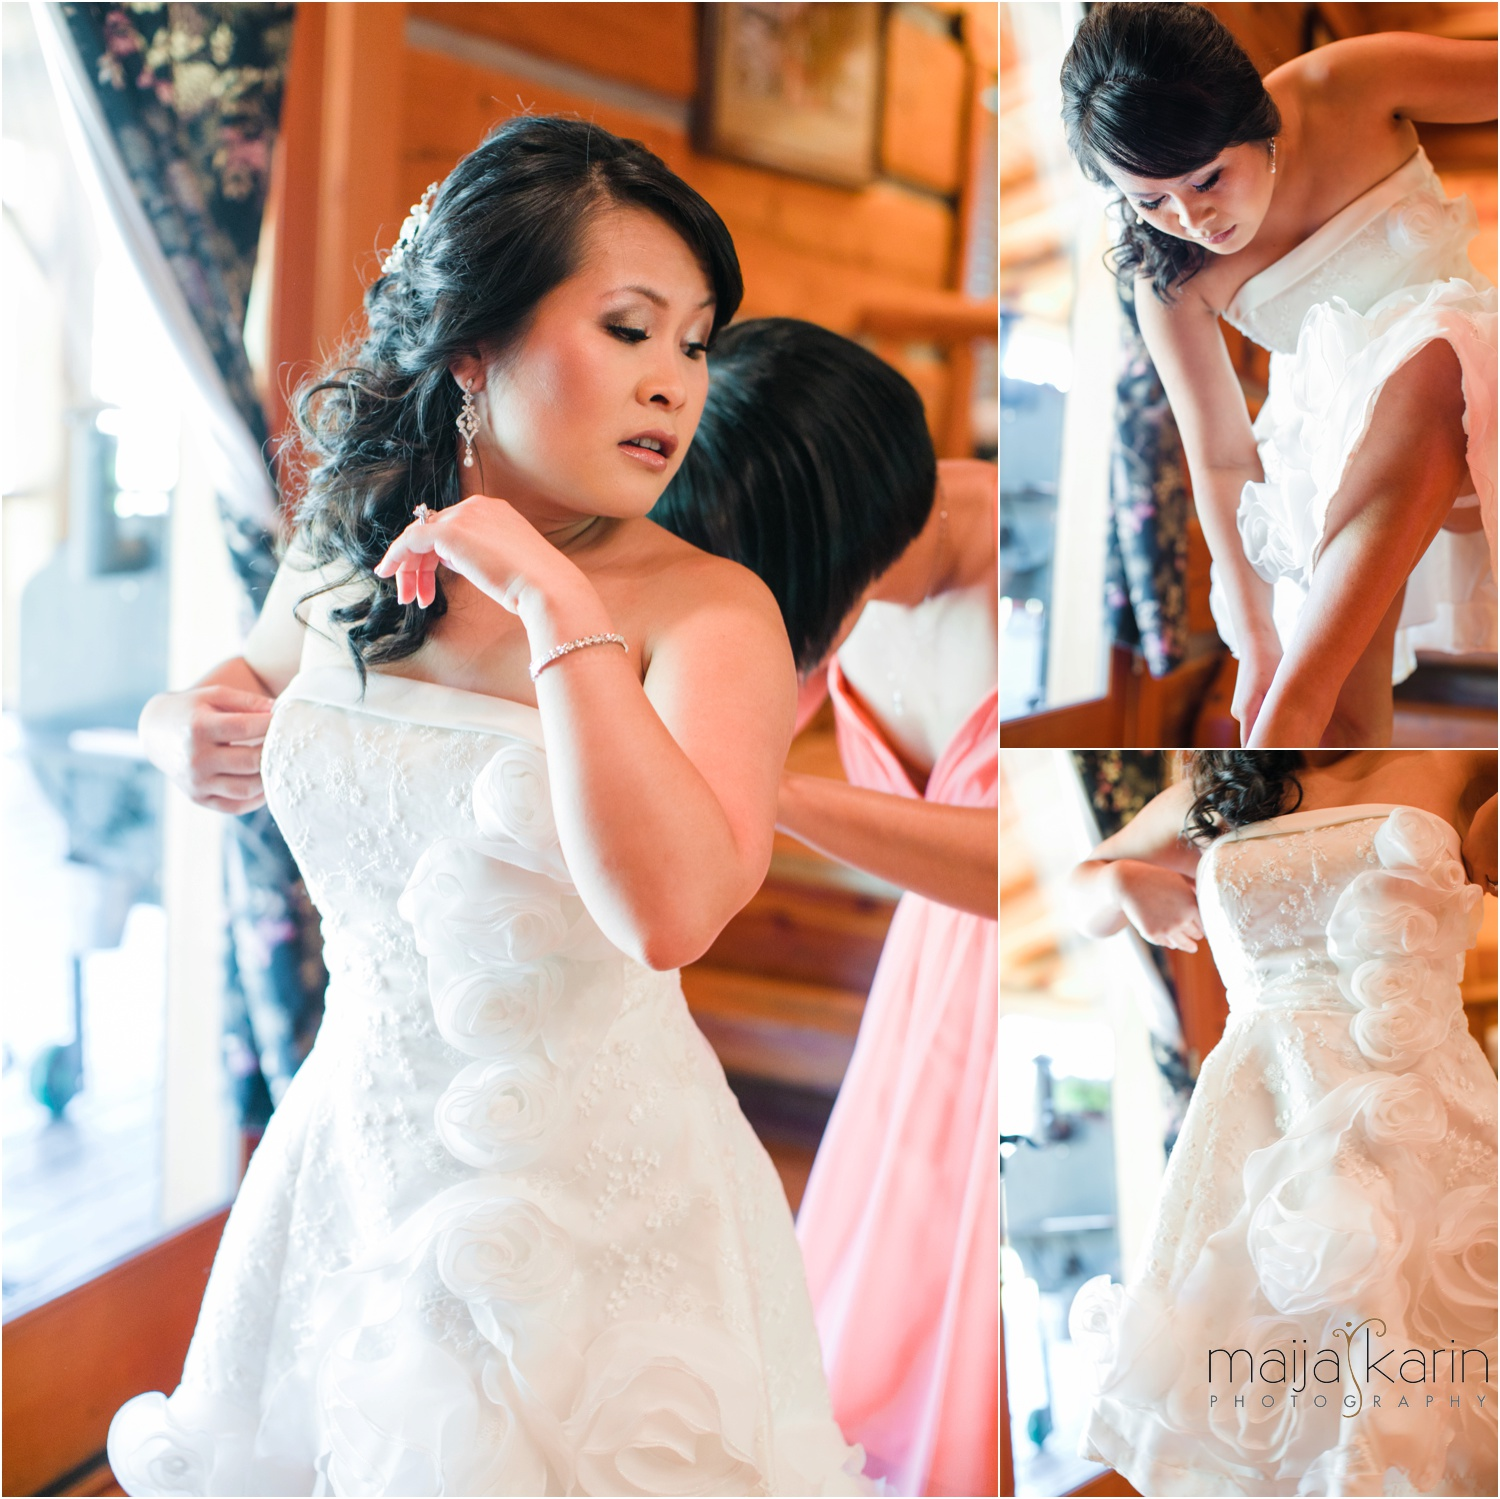 Mountain-Springs-Lodge-Leavenworth-Washington-Wedding-Photographer-Majiin-Karin-Photography_8.jpg